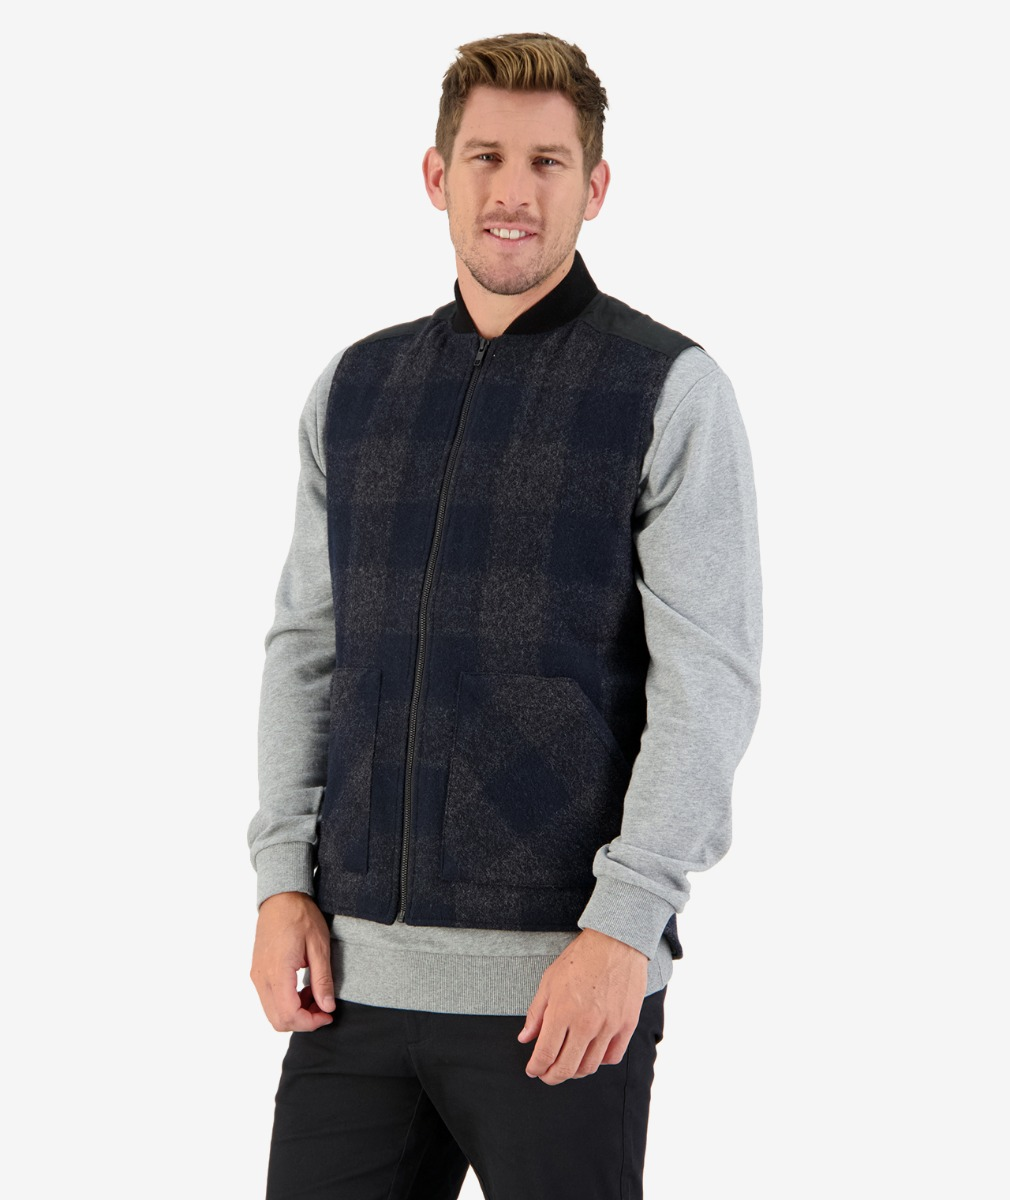 West Melton wool Vest in Graphite Check